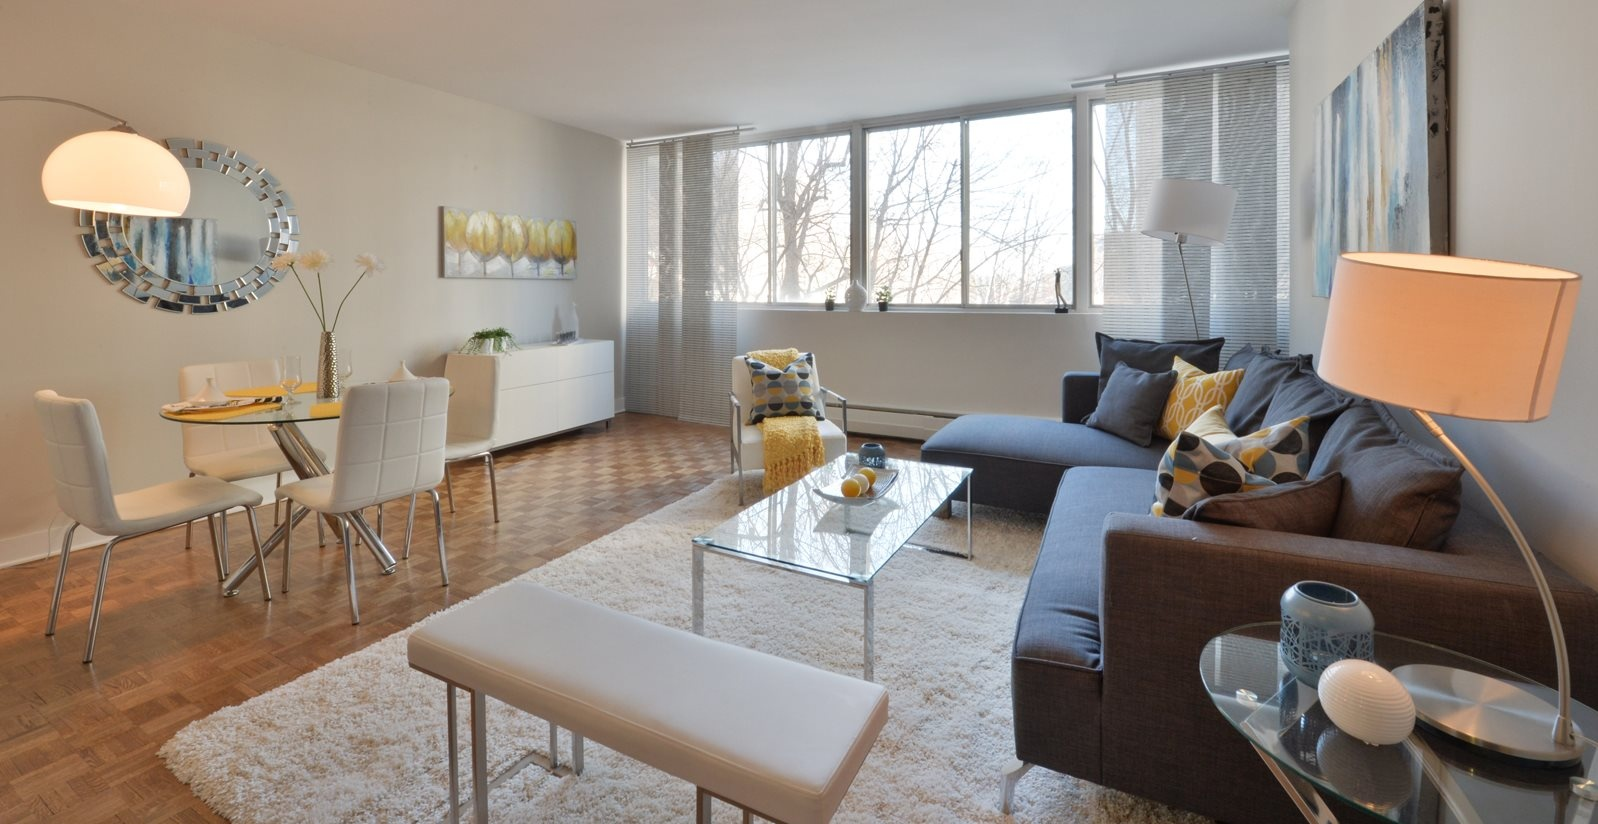 1212 Avenue des Pins Ouest in Montréal, QC is Now Available